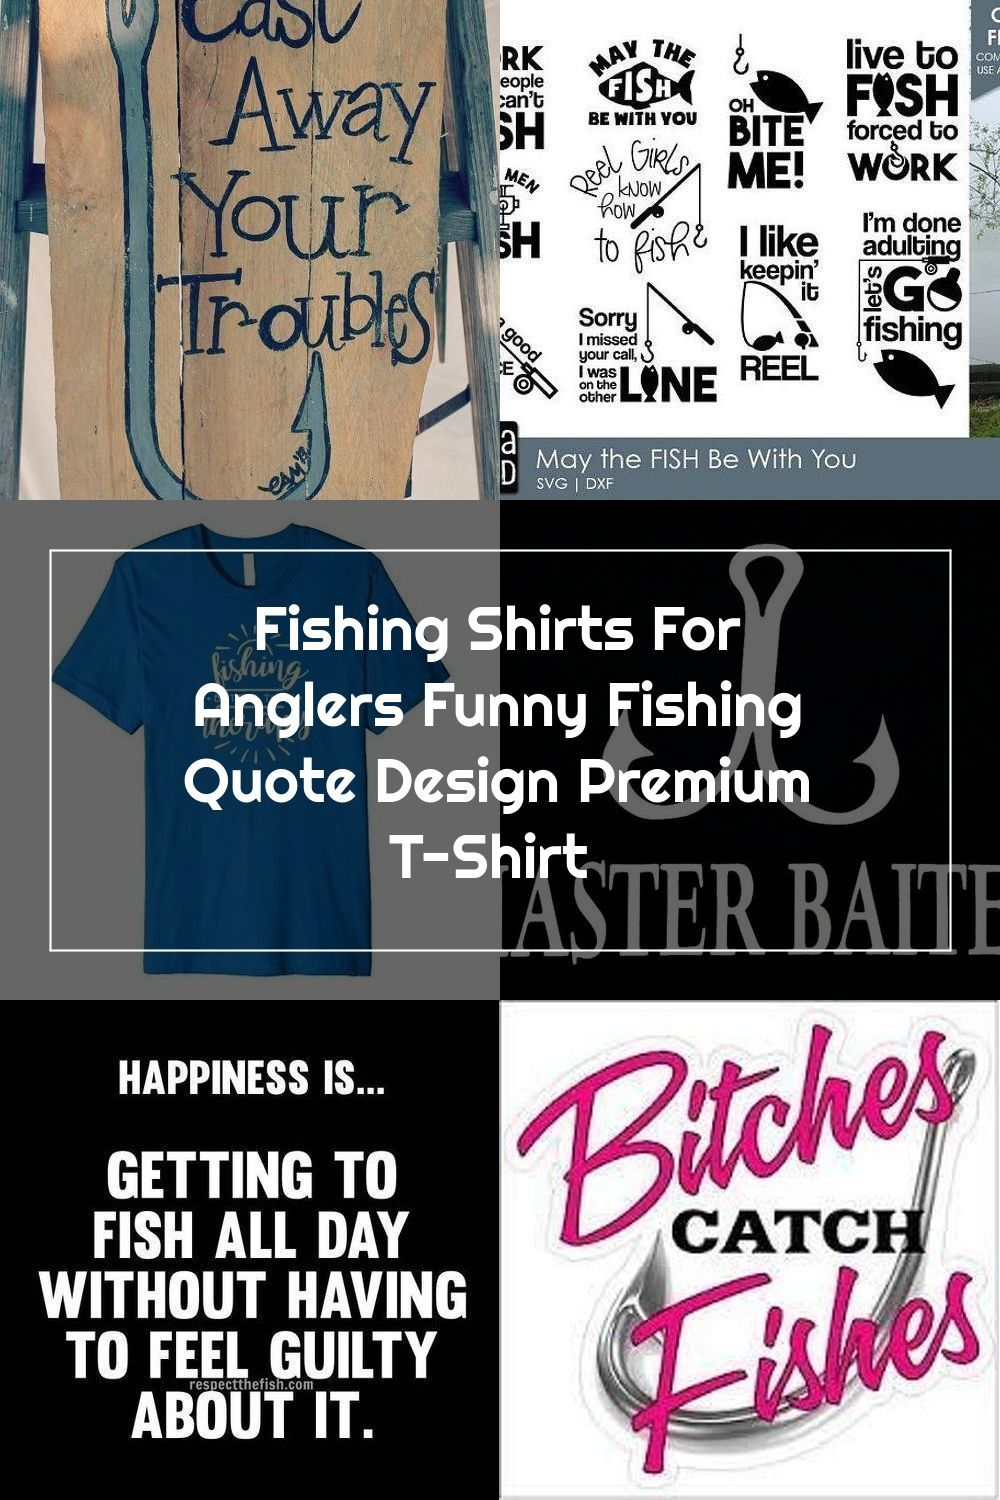 Fishing Shirts For Anglers Funny Fishing Quote Design Premium T Shirt Fishing Quotes Funny Fishing Quotes Fishing Humor